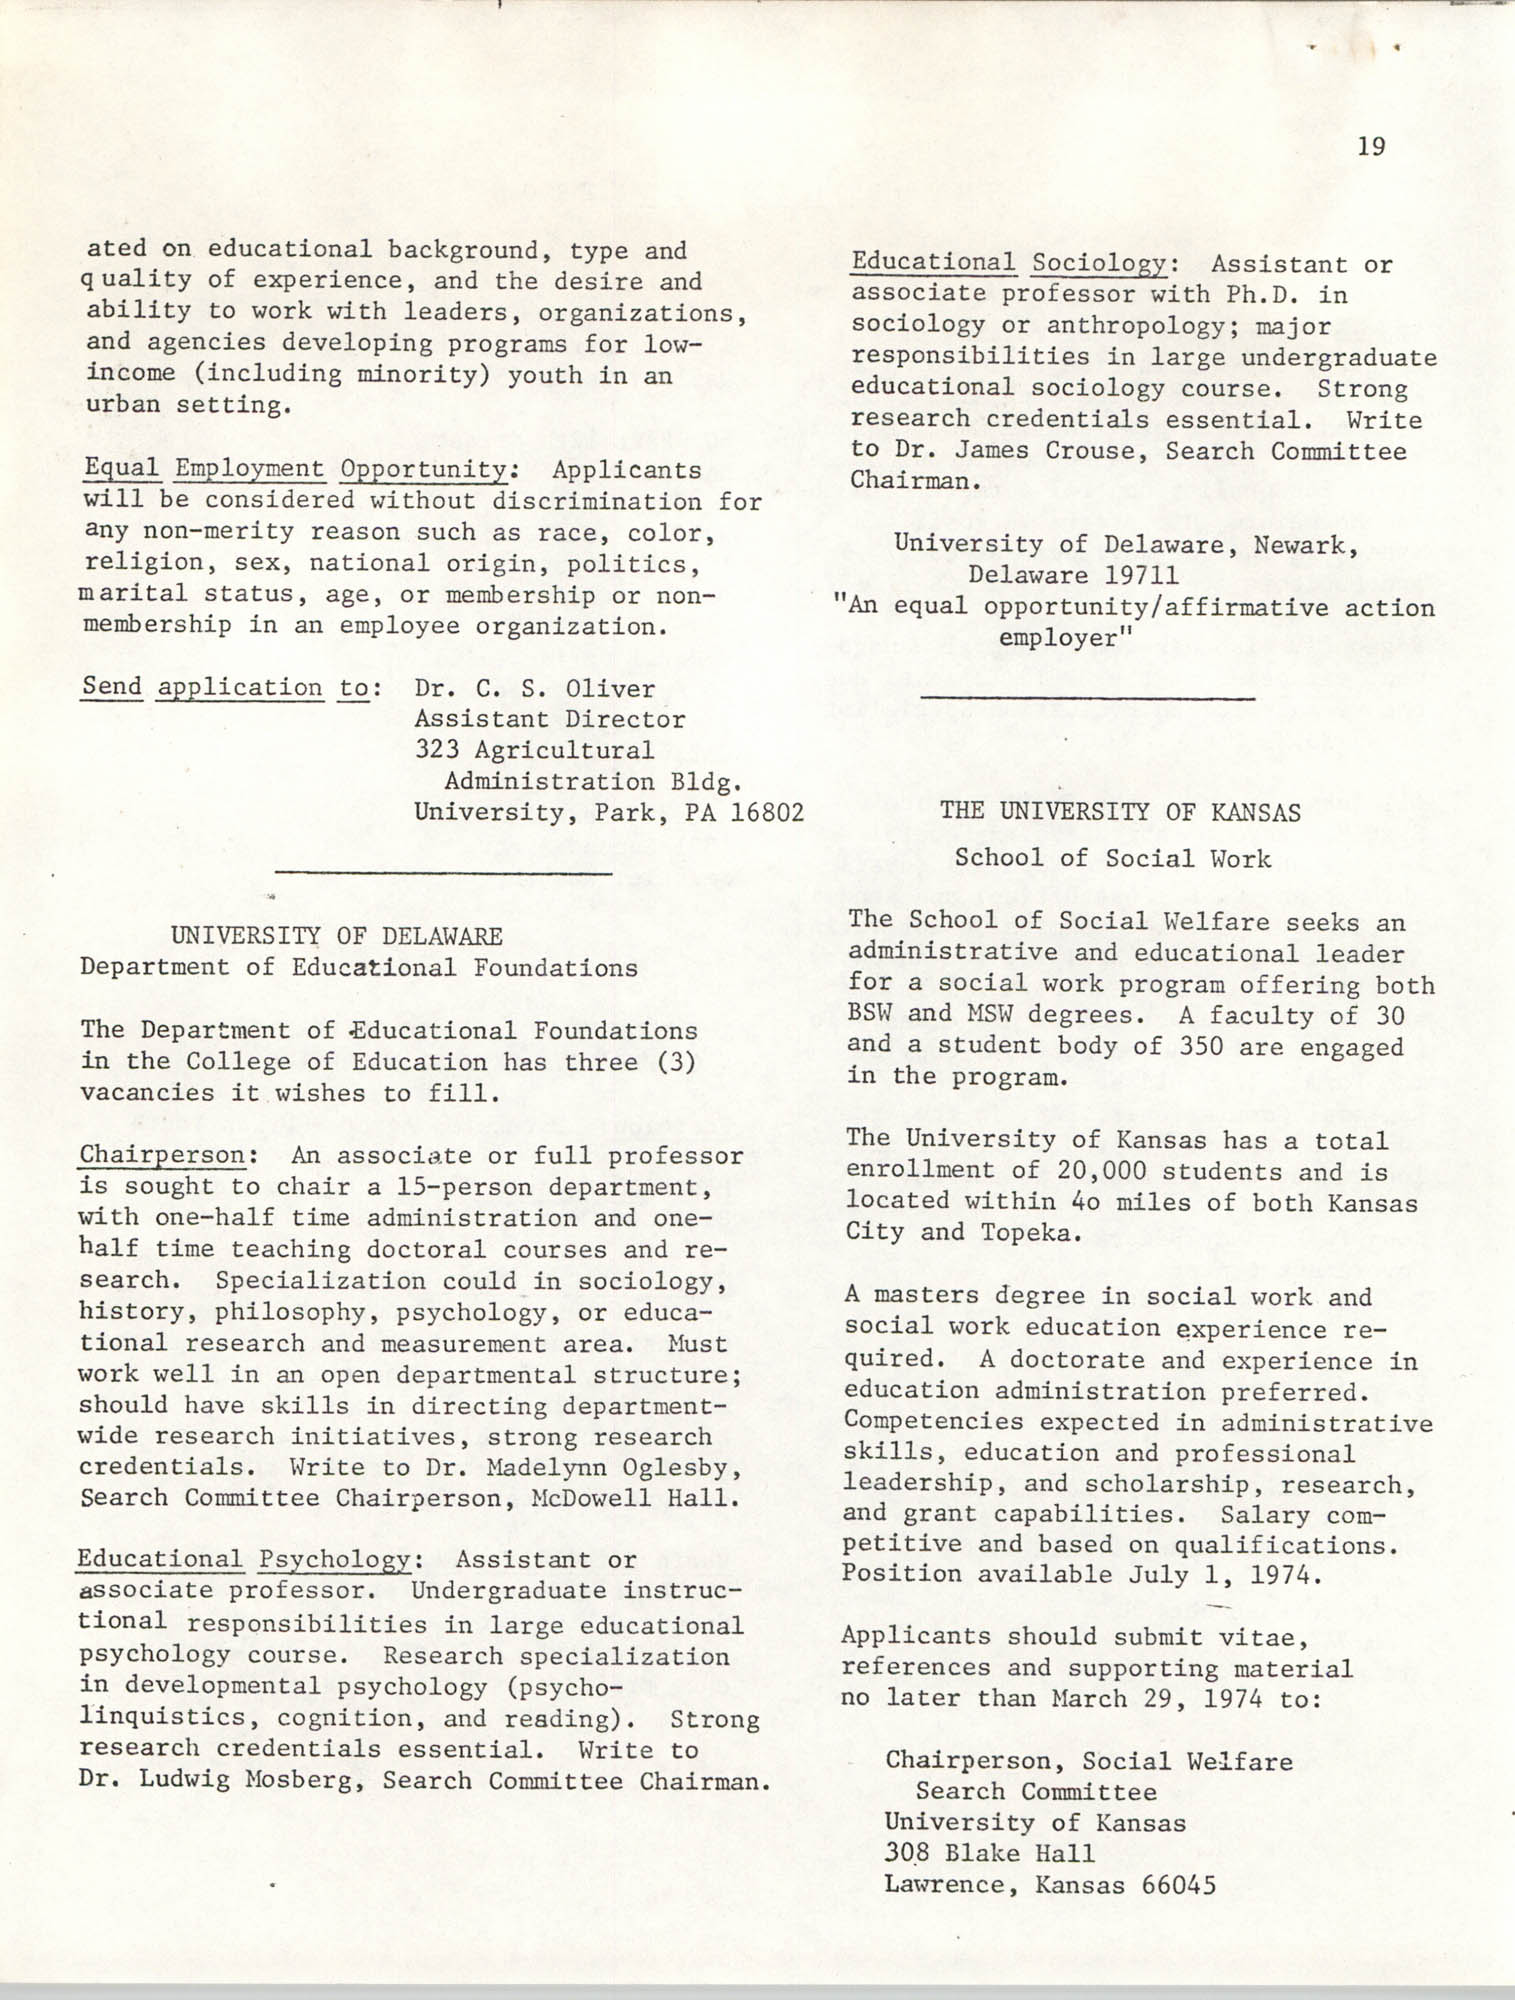 SHARE, Volume II, Number 3, March 1974, Page 19